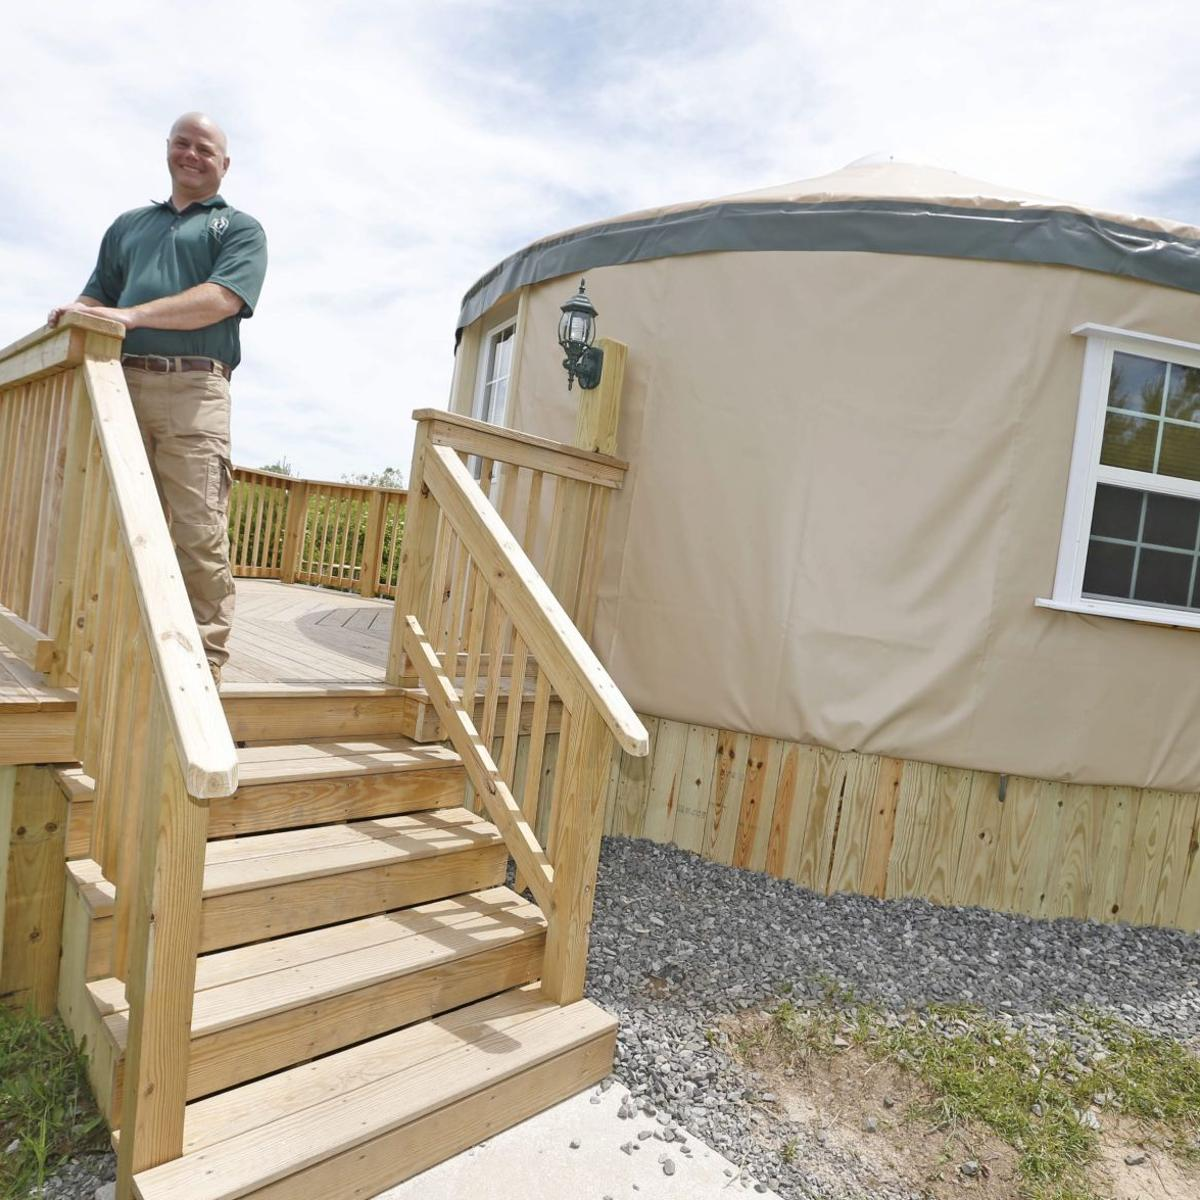 Parks New Yurts Offer A Camping Experience In The Round Local News Buffalonews Com Enjoy days set alongside a stunning lake, head to fantastic seafood restaurants along the coast and. parks new yurts offer a camping